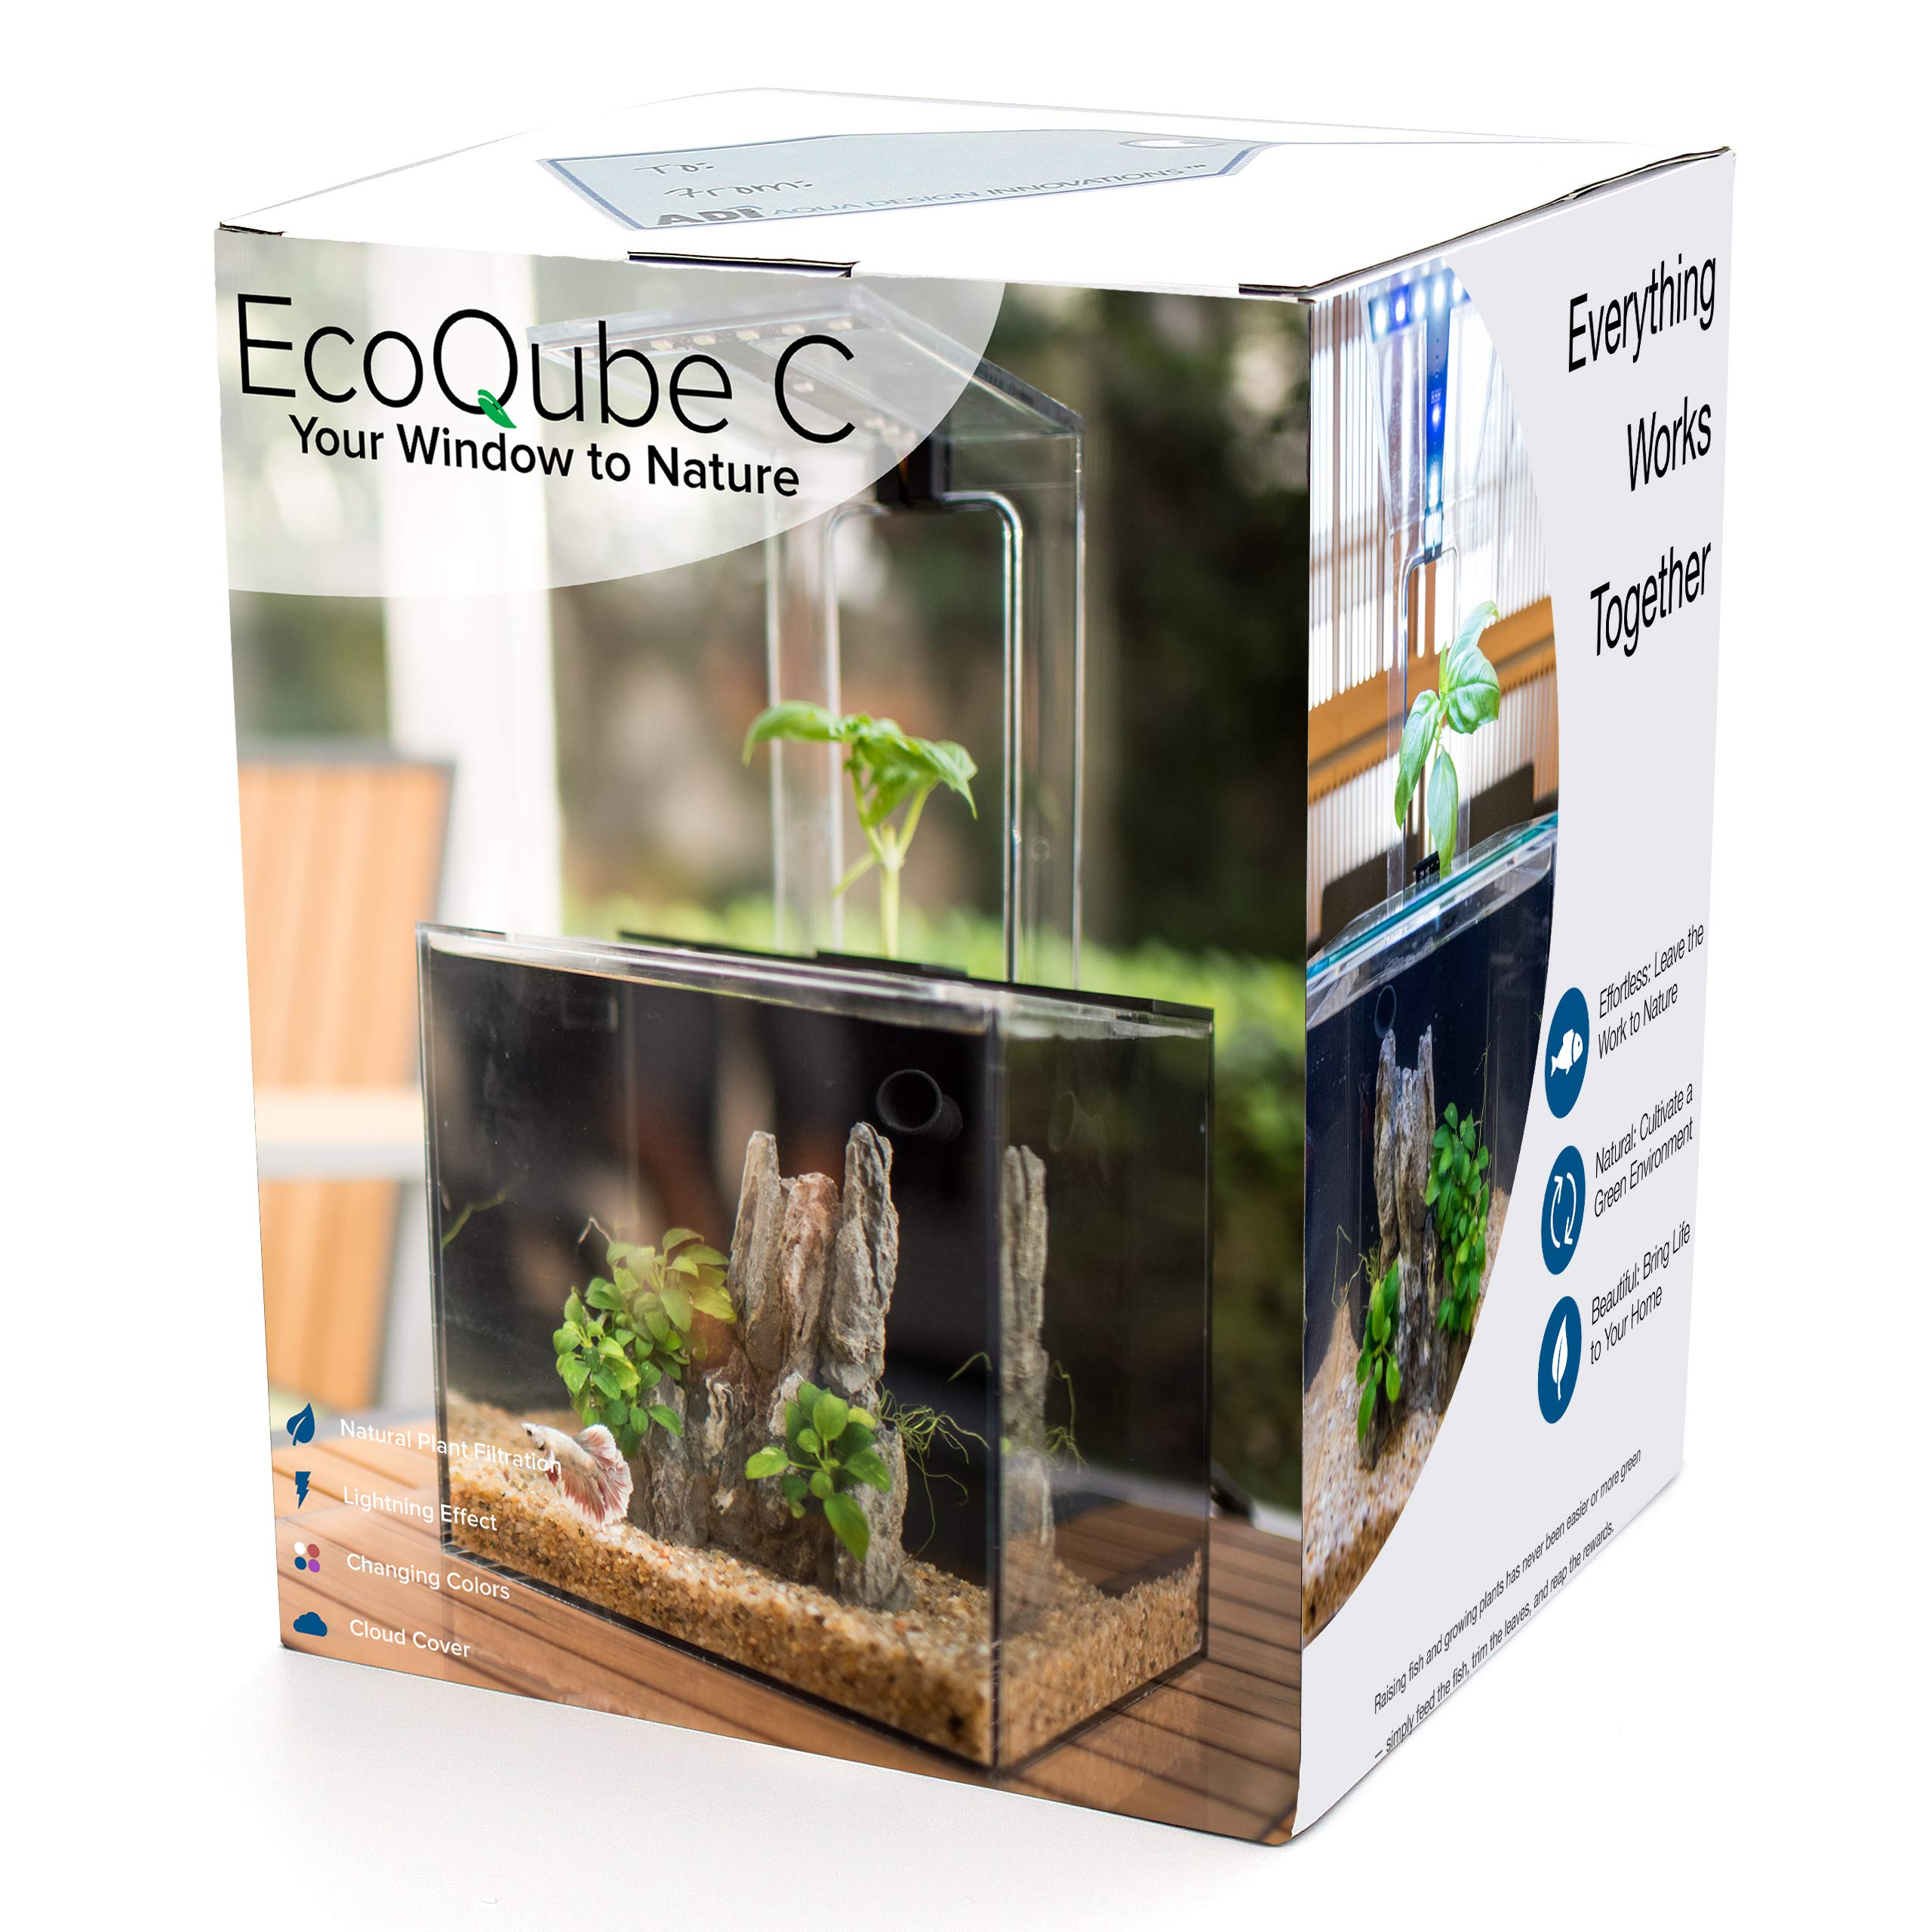 EcoQubeC Aquarium - Desktop Betta Fish Tank For Living Office And Home Décor by EcoQube